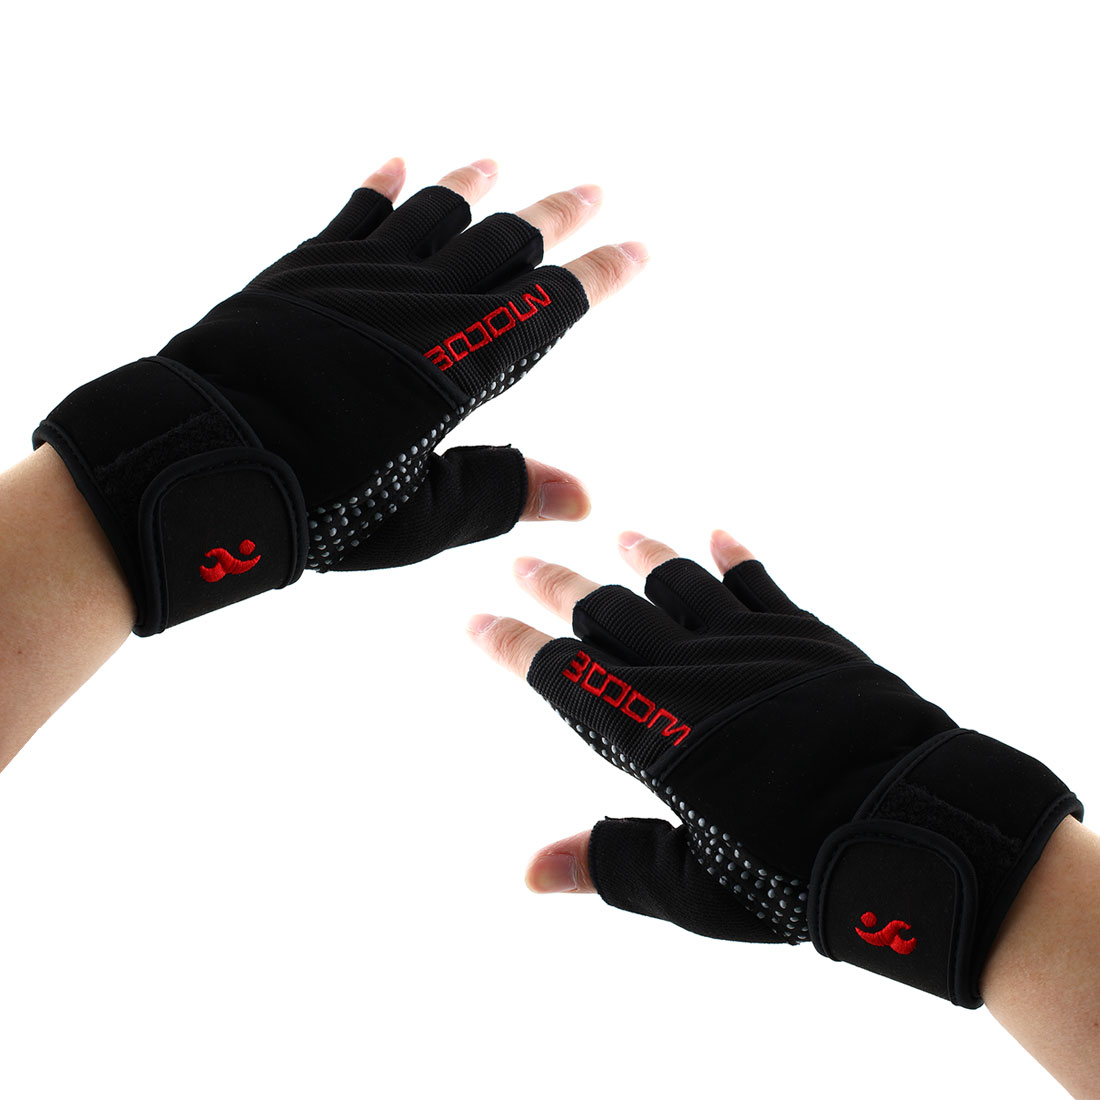 Boodun Authorized Sports Weight Lifting Training Gym Workout Fitness, Embroidery Adjustable Anti Slip, Half Finger Gloves Red Size L Pair